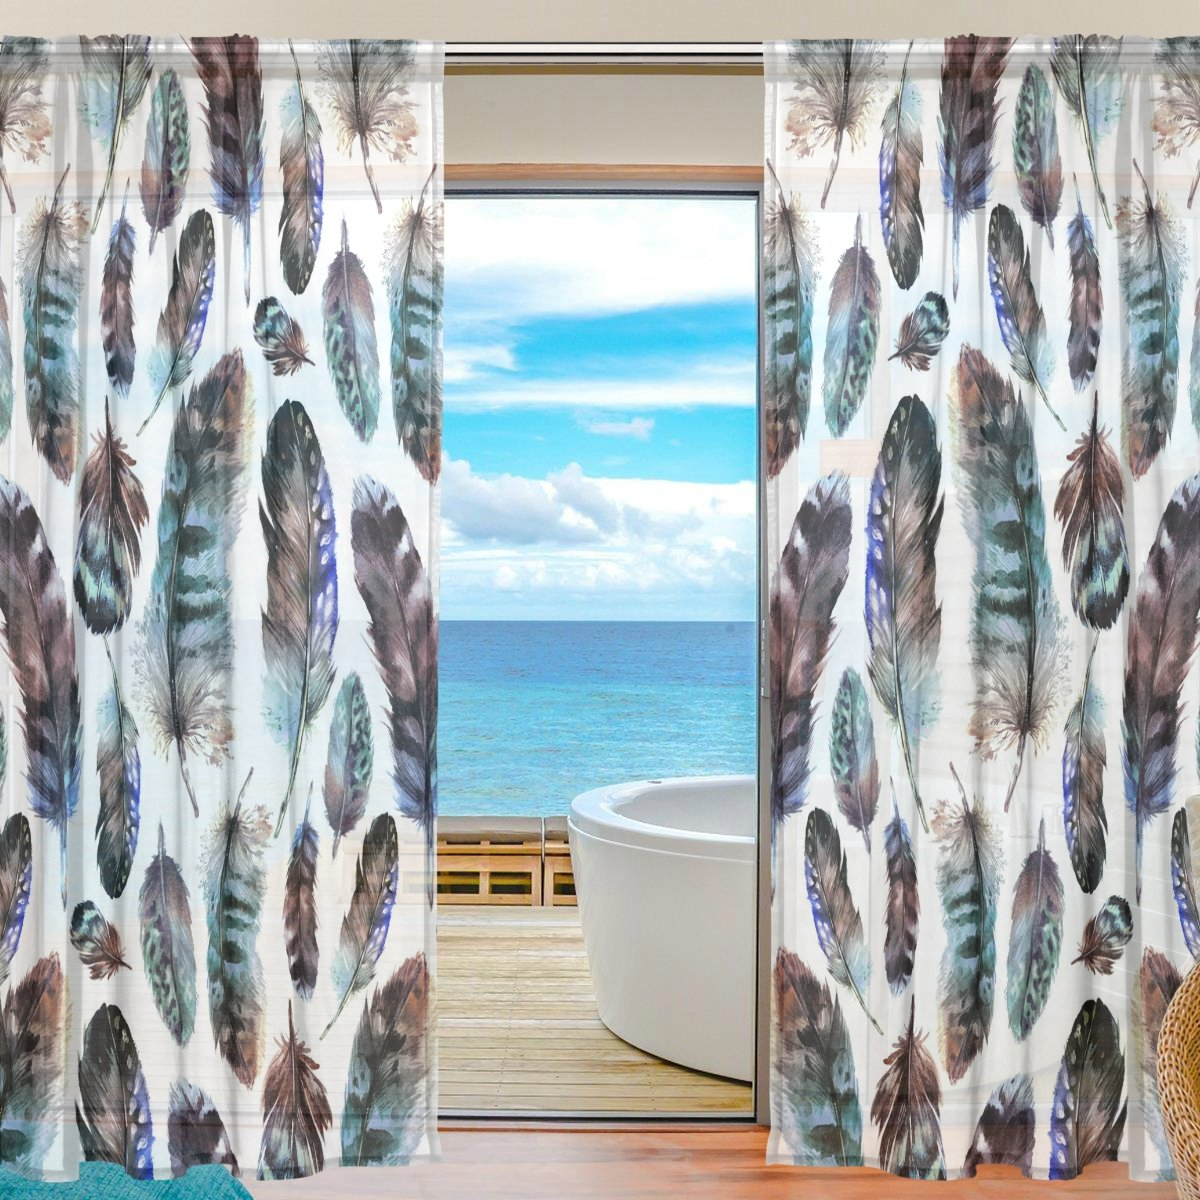 SEULIFE Window Sheer Curtain, Tribal Ethnic Boho Animal Bird Feathers Voile Curtain Drapes for Door Kitchen Living Room Bedroom 55x84 inches 2 Panels